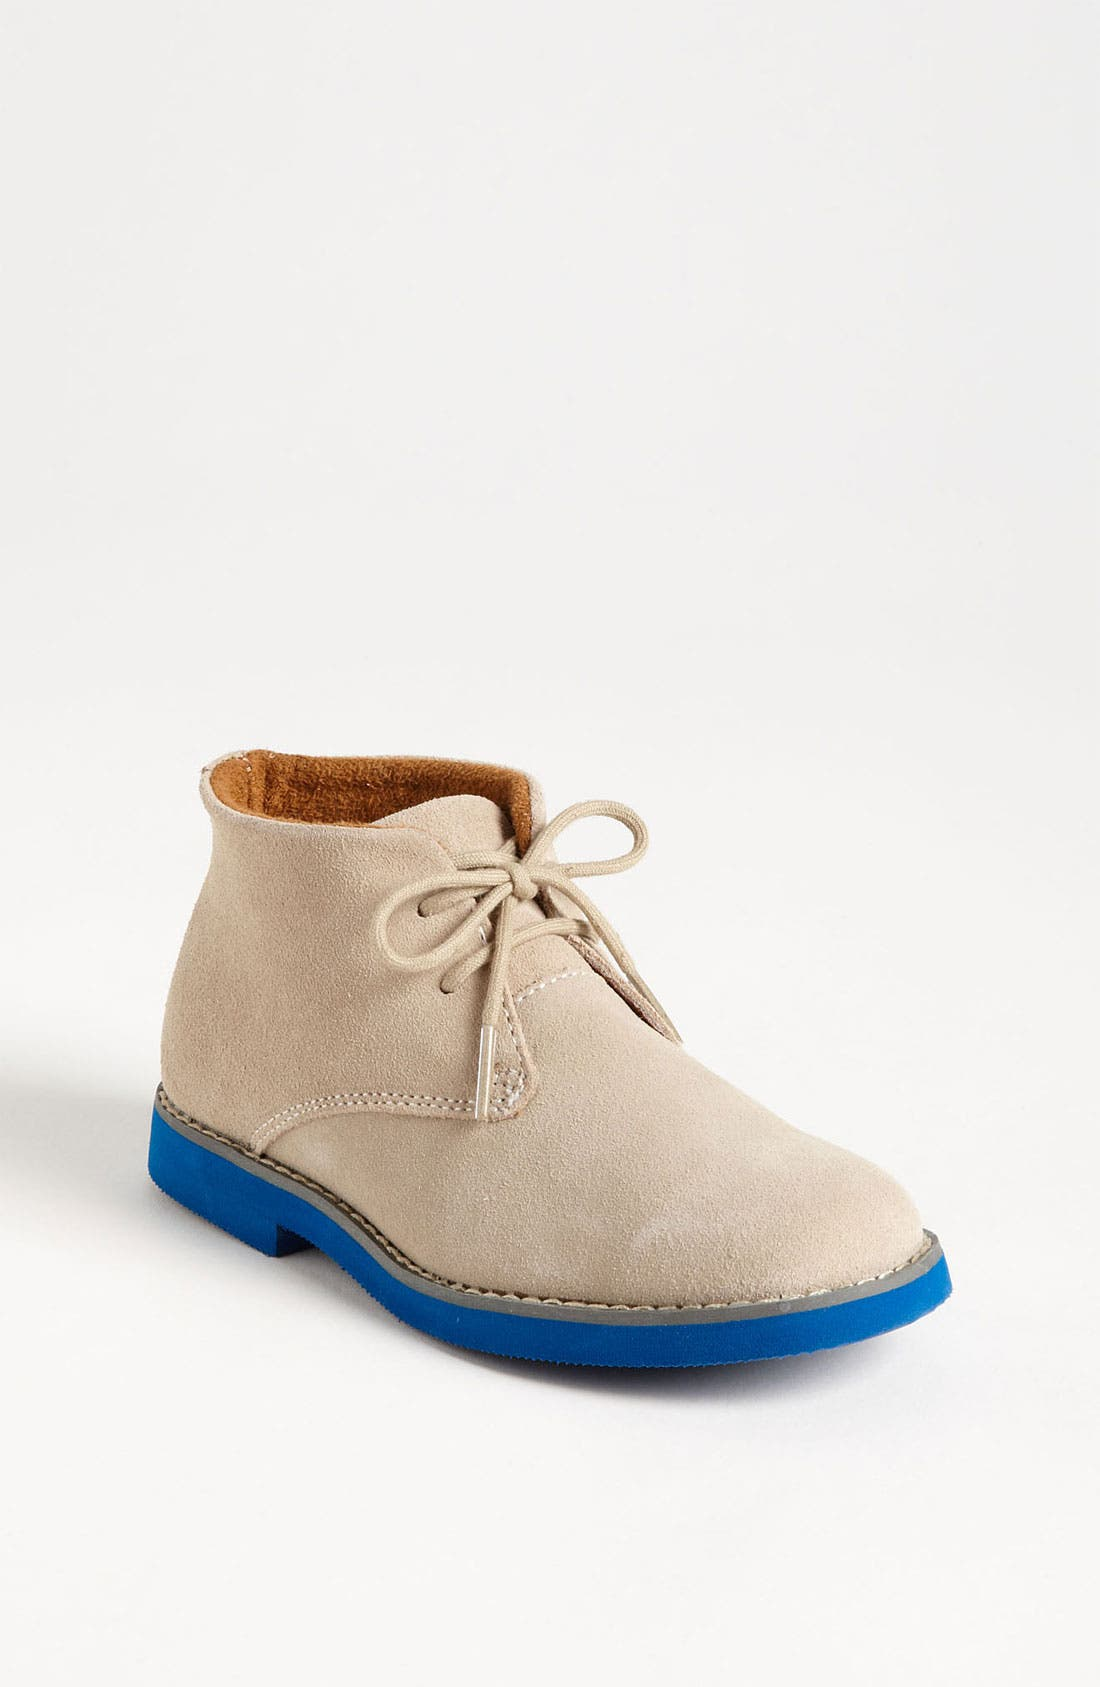 Main Image - Florsheim 'Quinlan Jr.' Chukka Boot (Toddler, Little Kid & Big Kid)